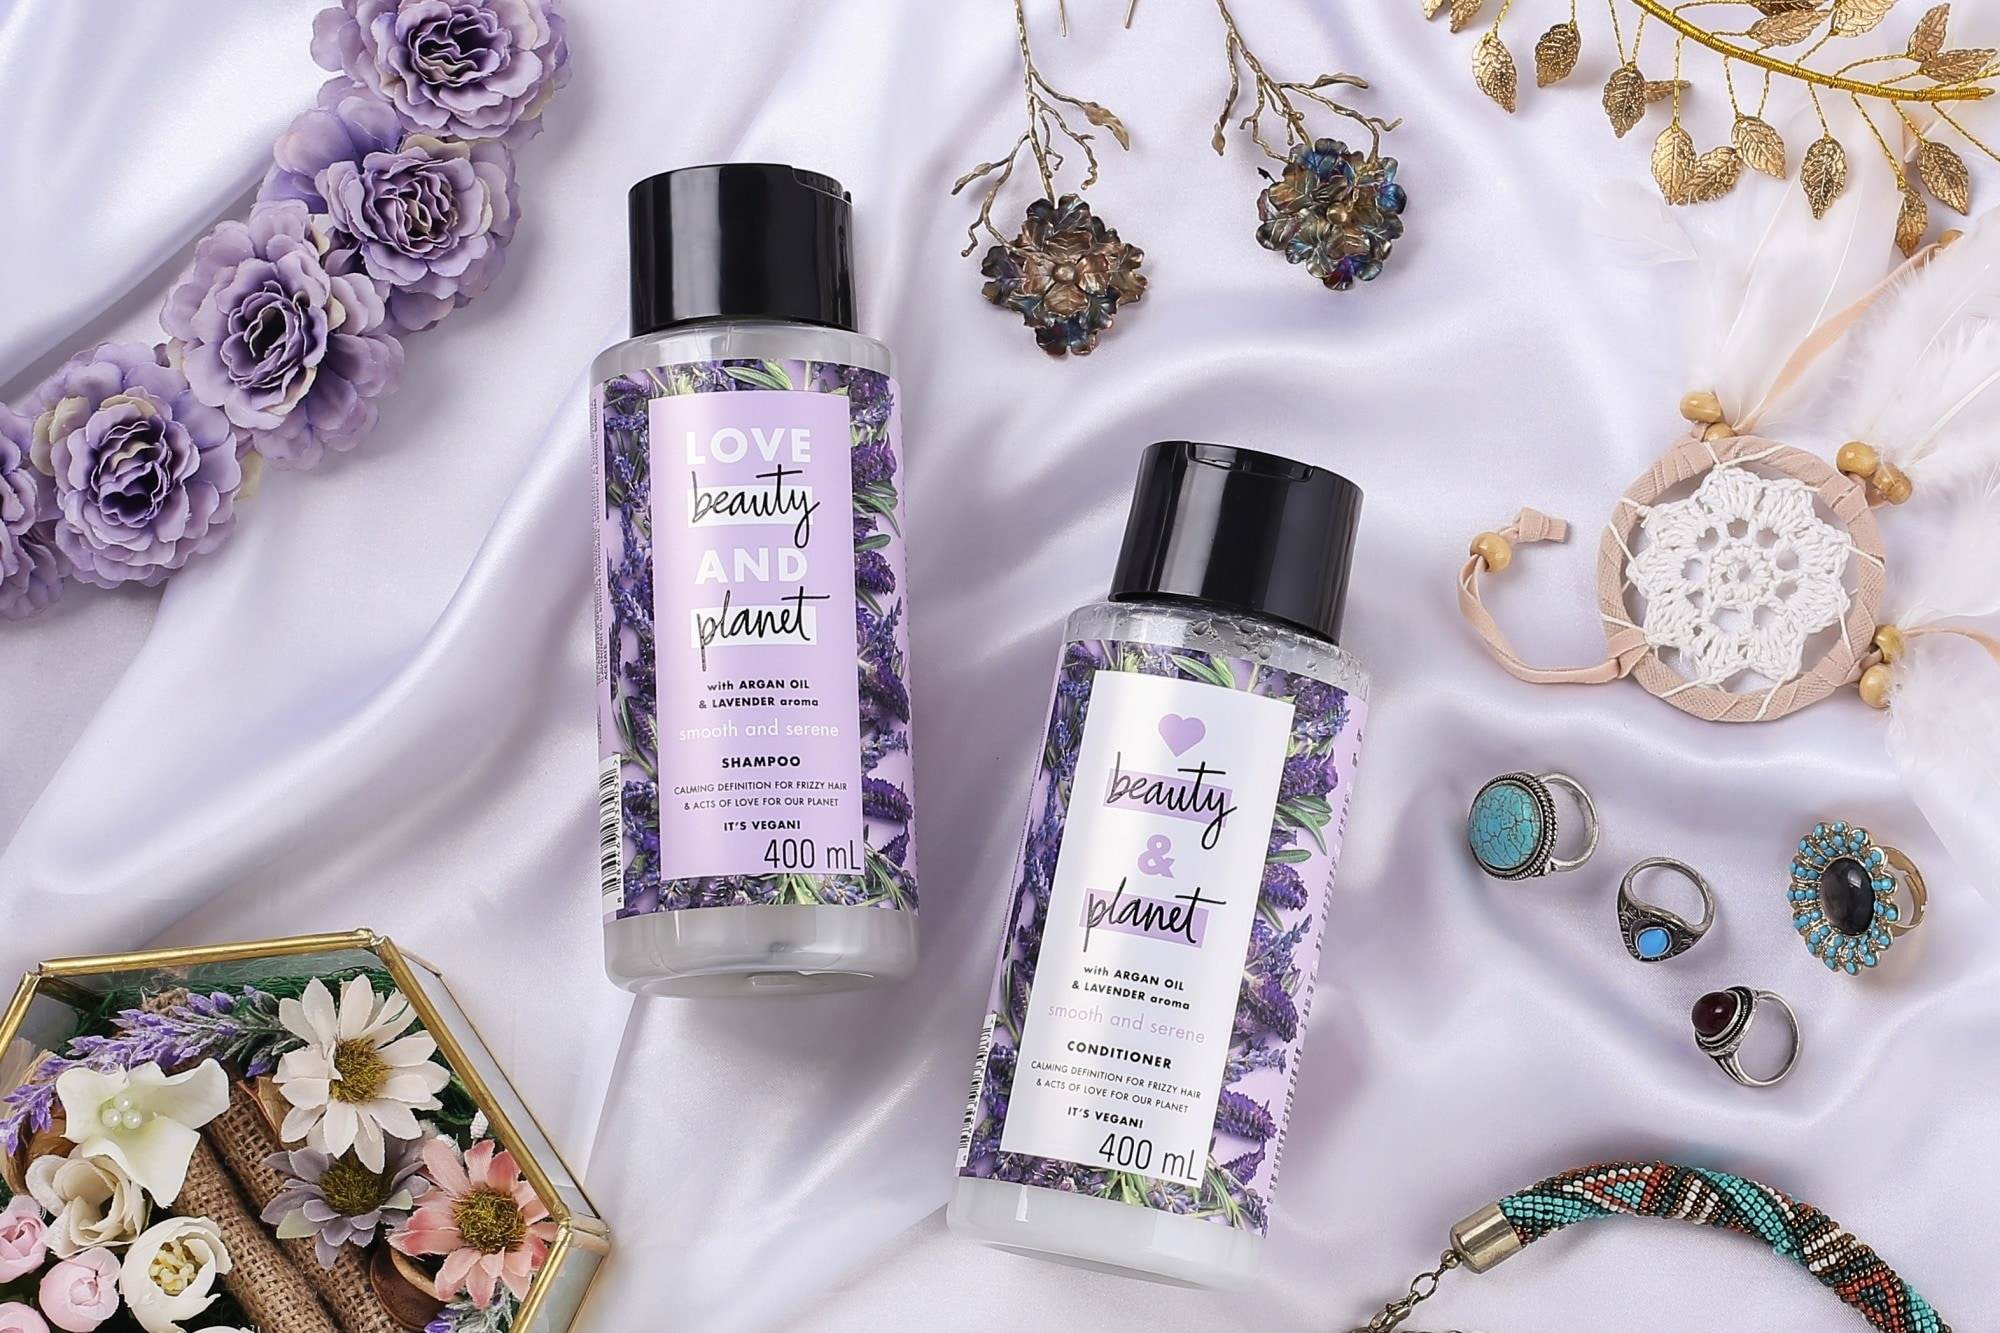 Eco-friendly hair products: Flatlay of shampoo and conditioner with faux flowers and accessories